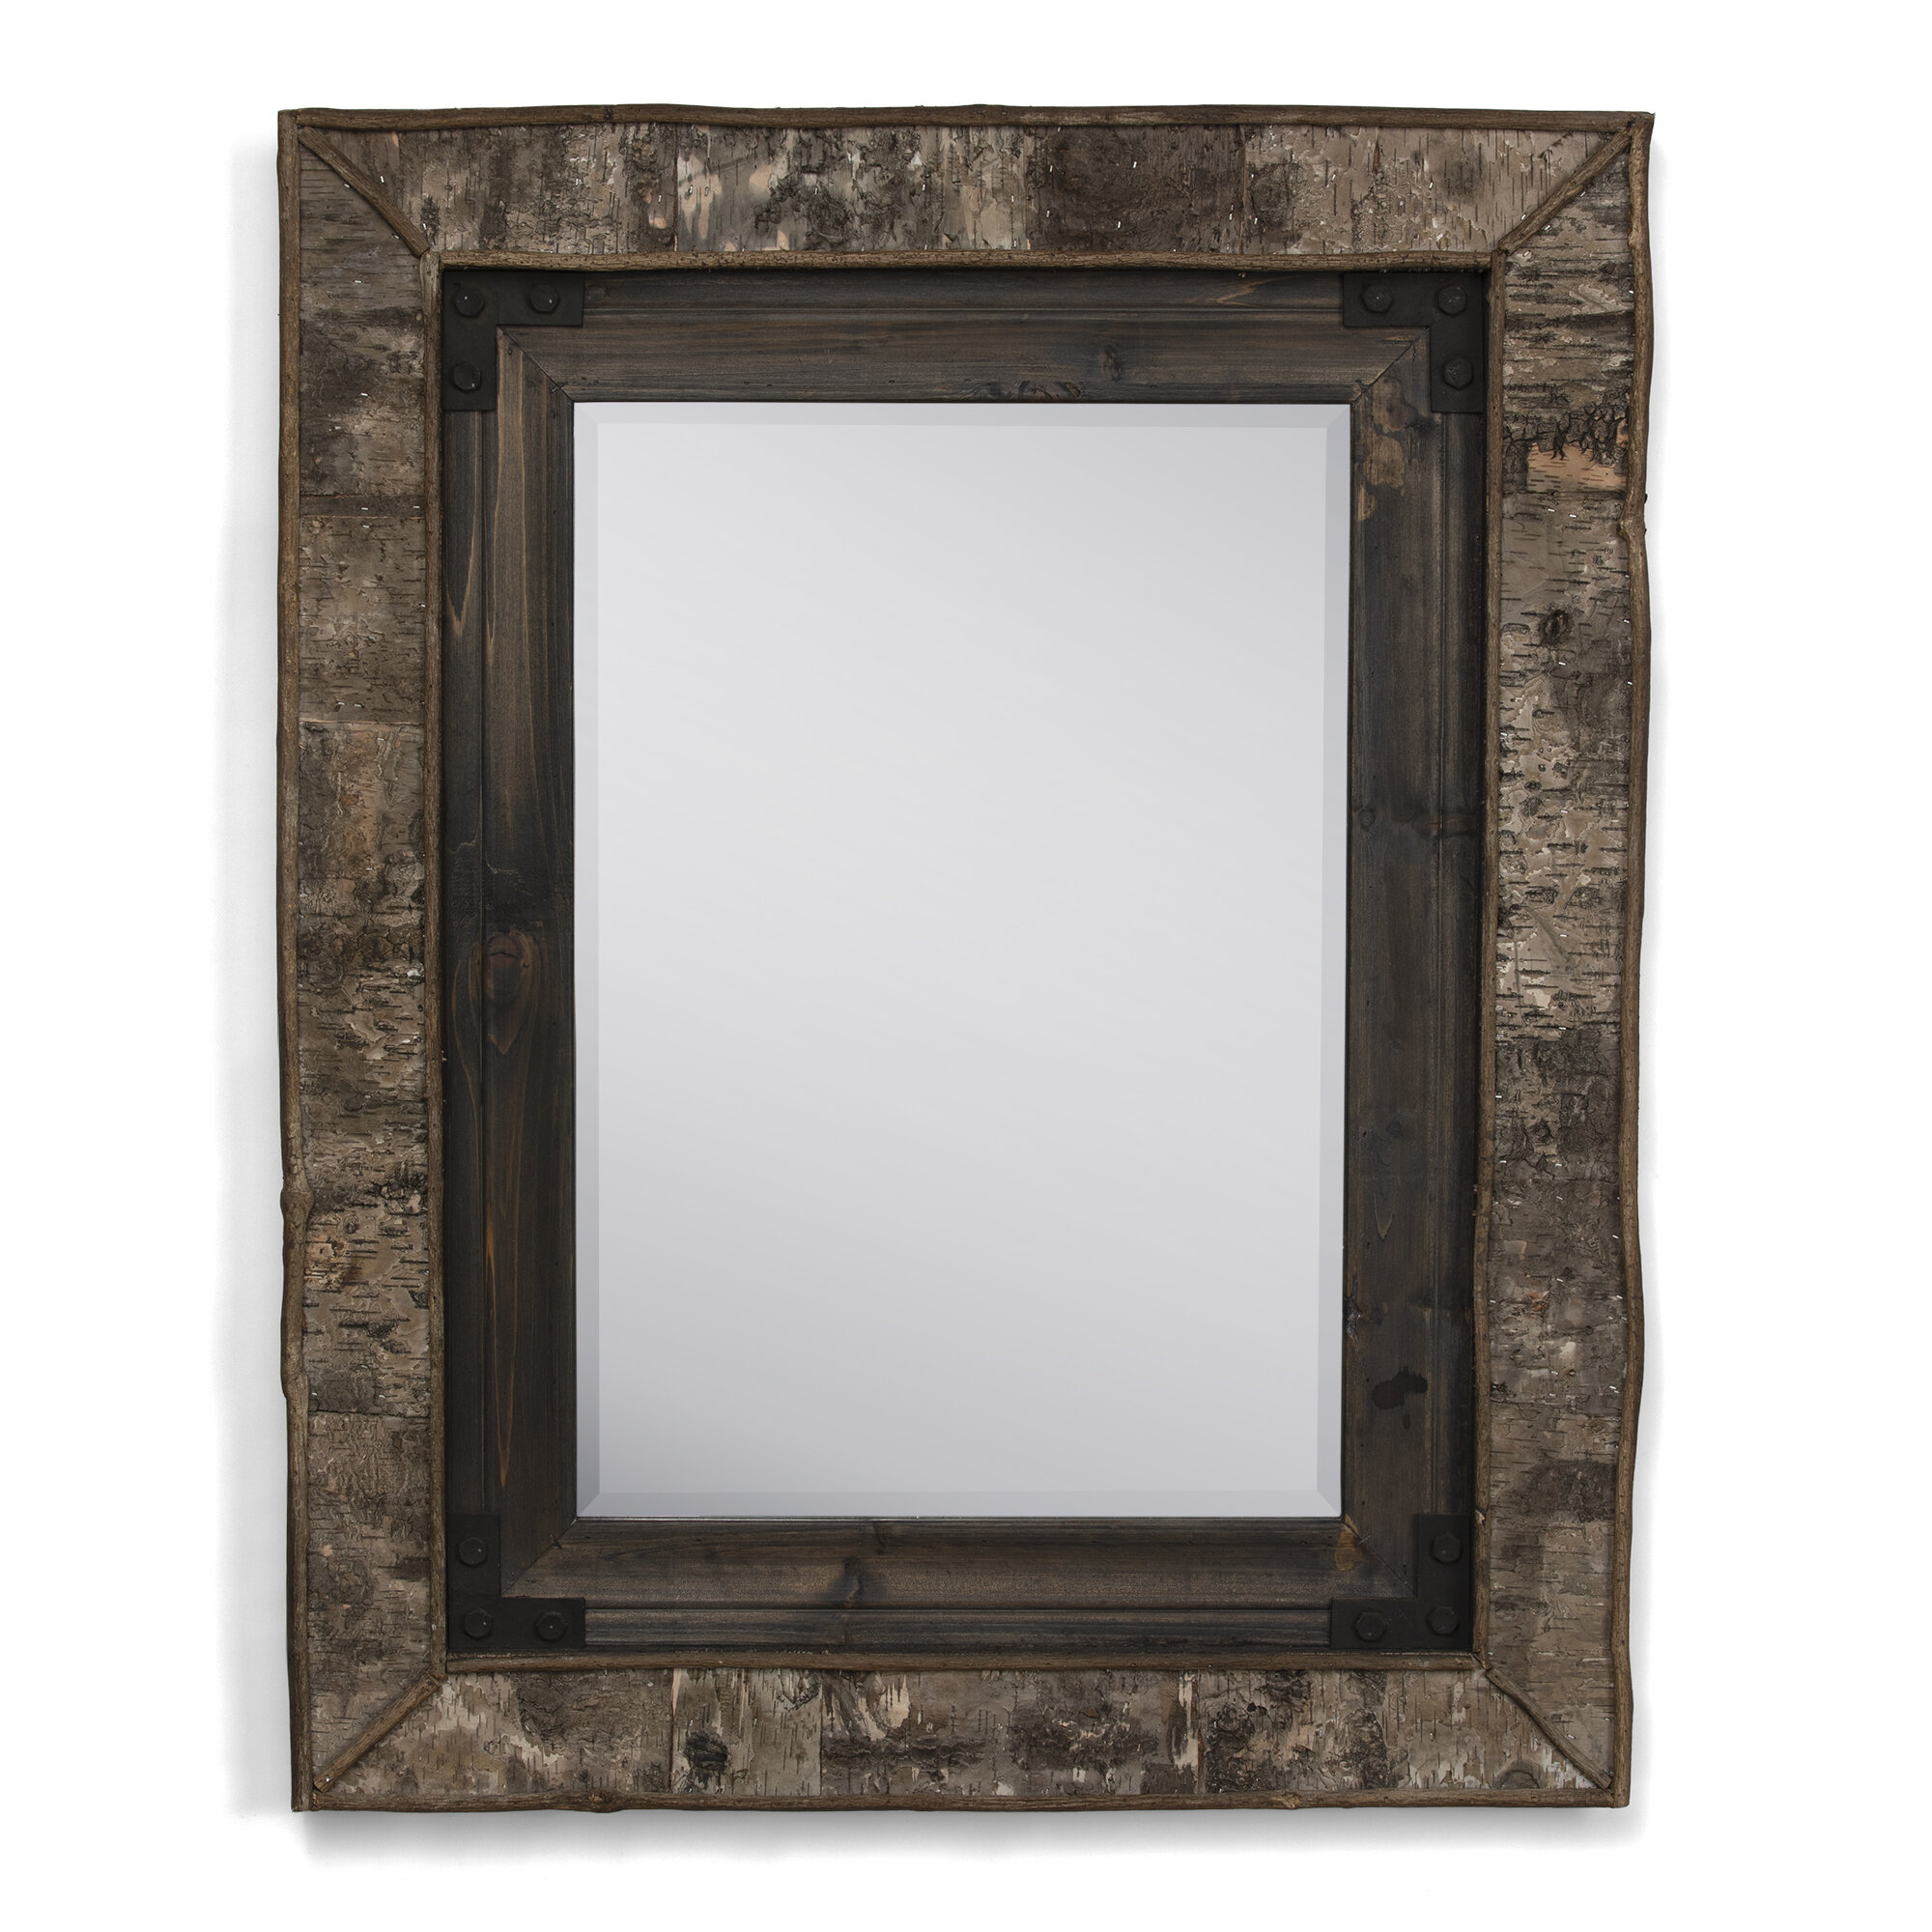 Details About Loon Peak Rectangular Accent Wall Mirror Inside Rectangle Accent Wall Mirrors (Photo 15 of 30)